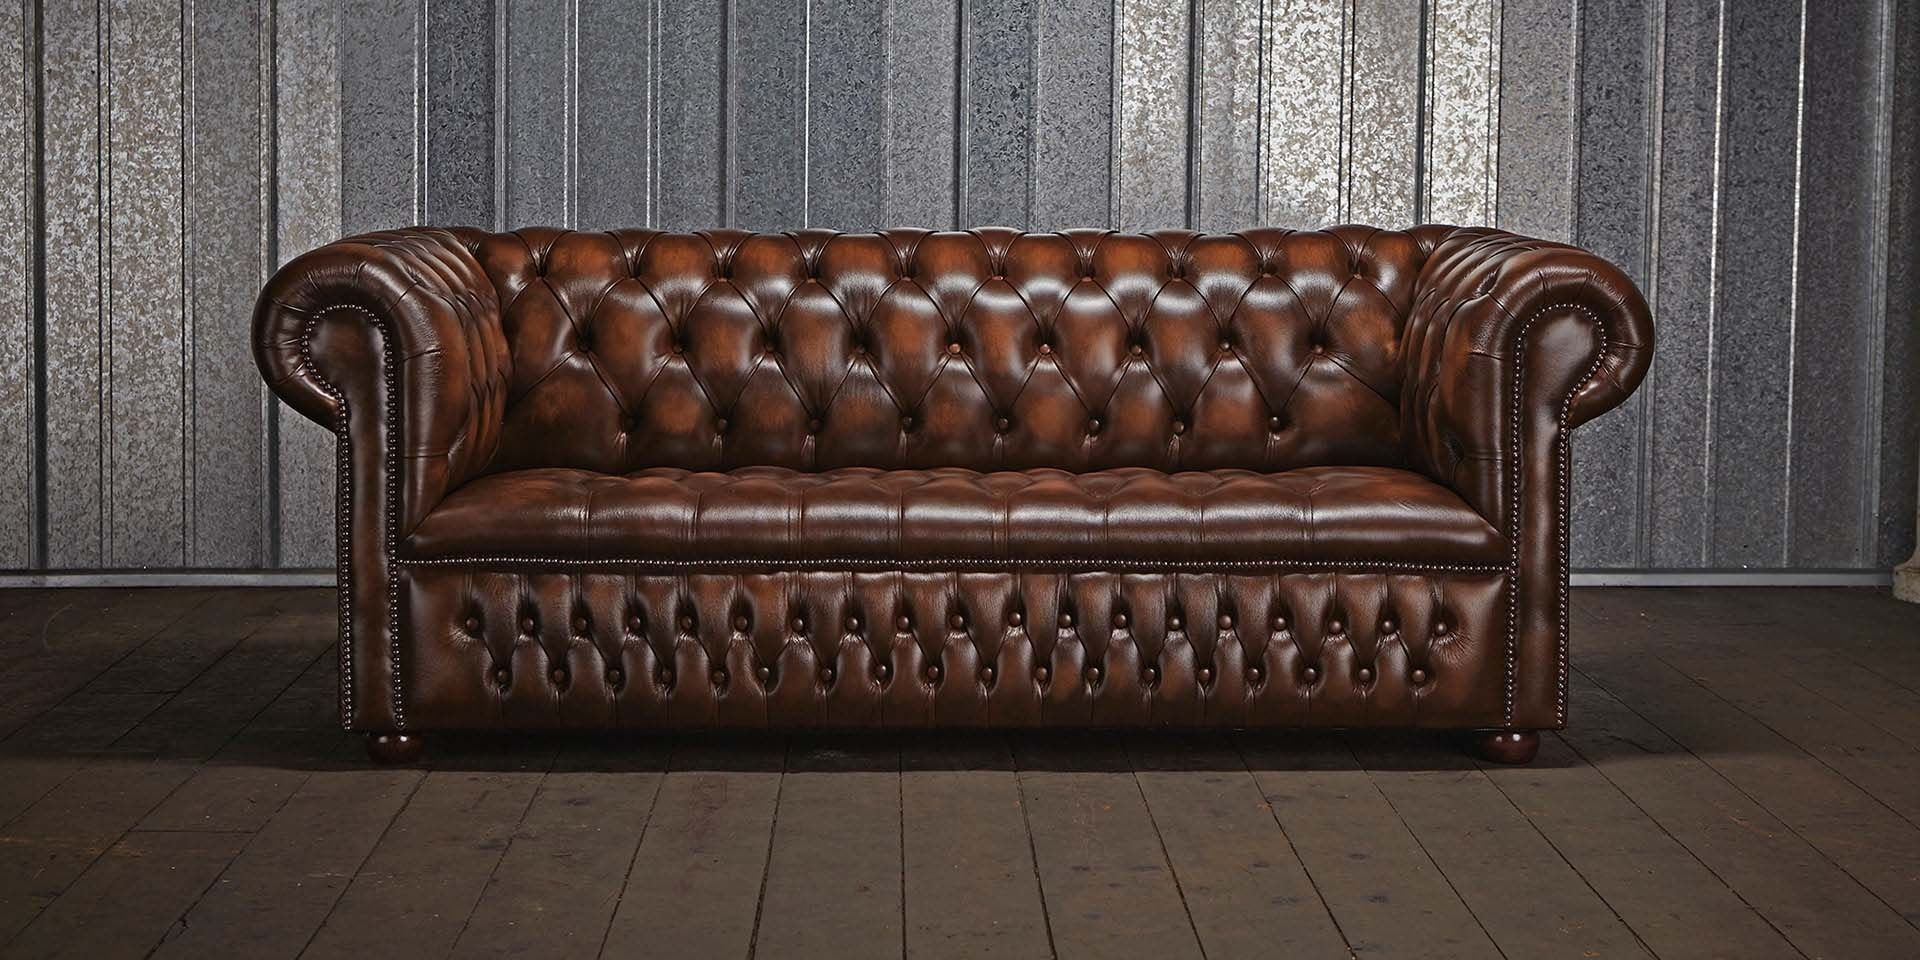 Craigslist Leather Sofas Intended For Trendy Luxury Leather Couch Craigslist 57 For Your Sofa Table Ideas With (View 20 of 20)